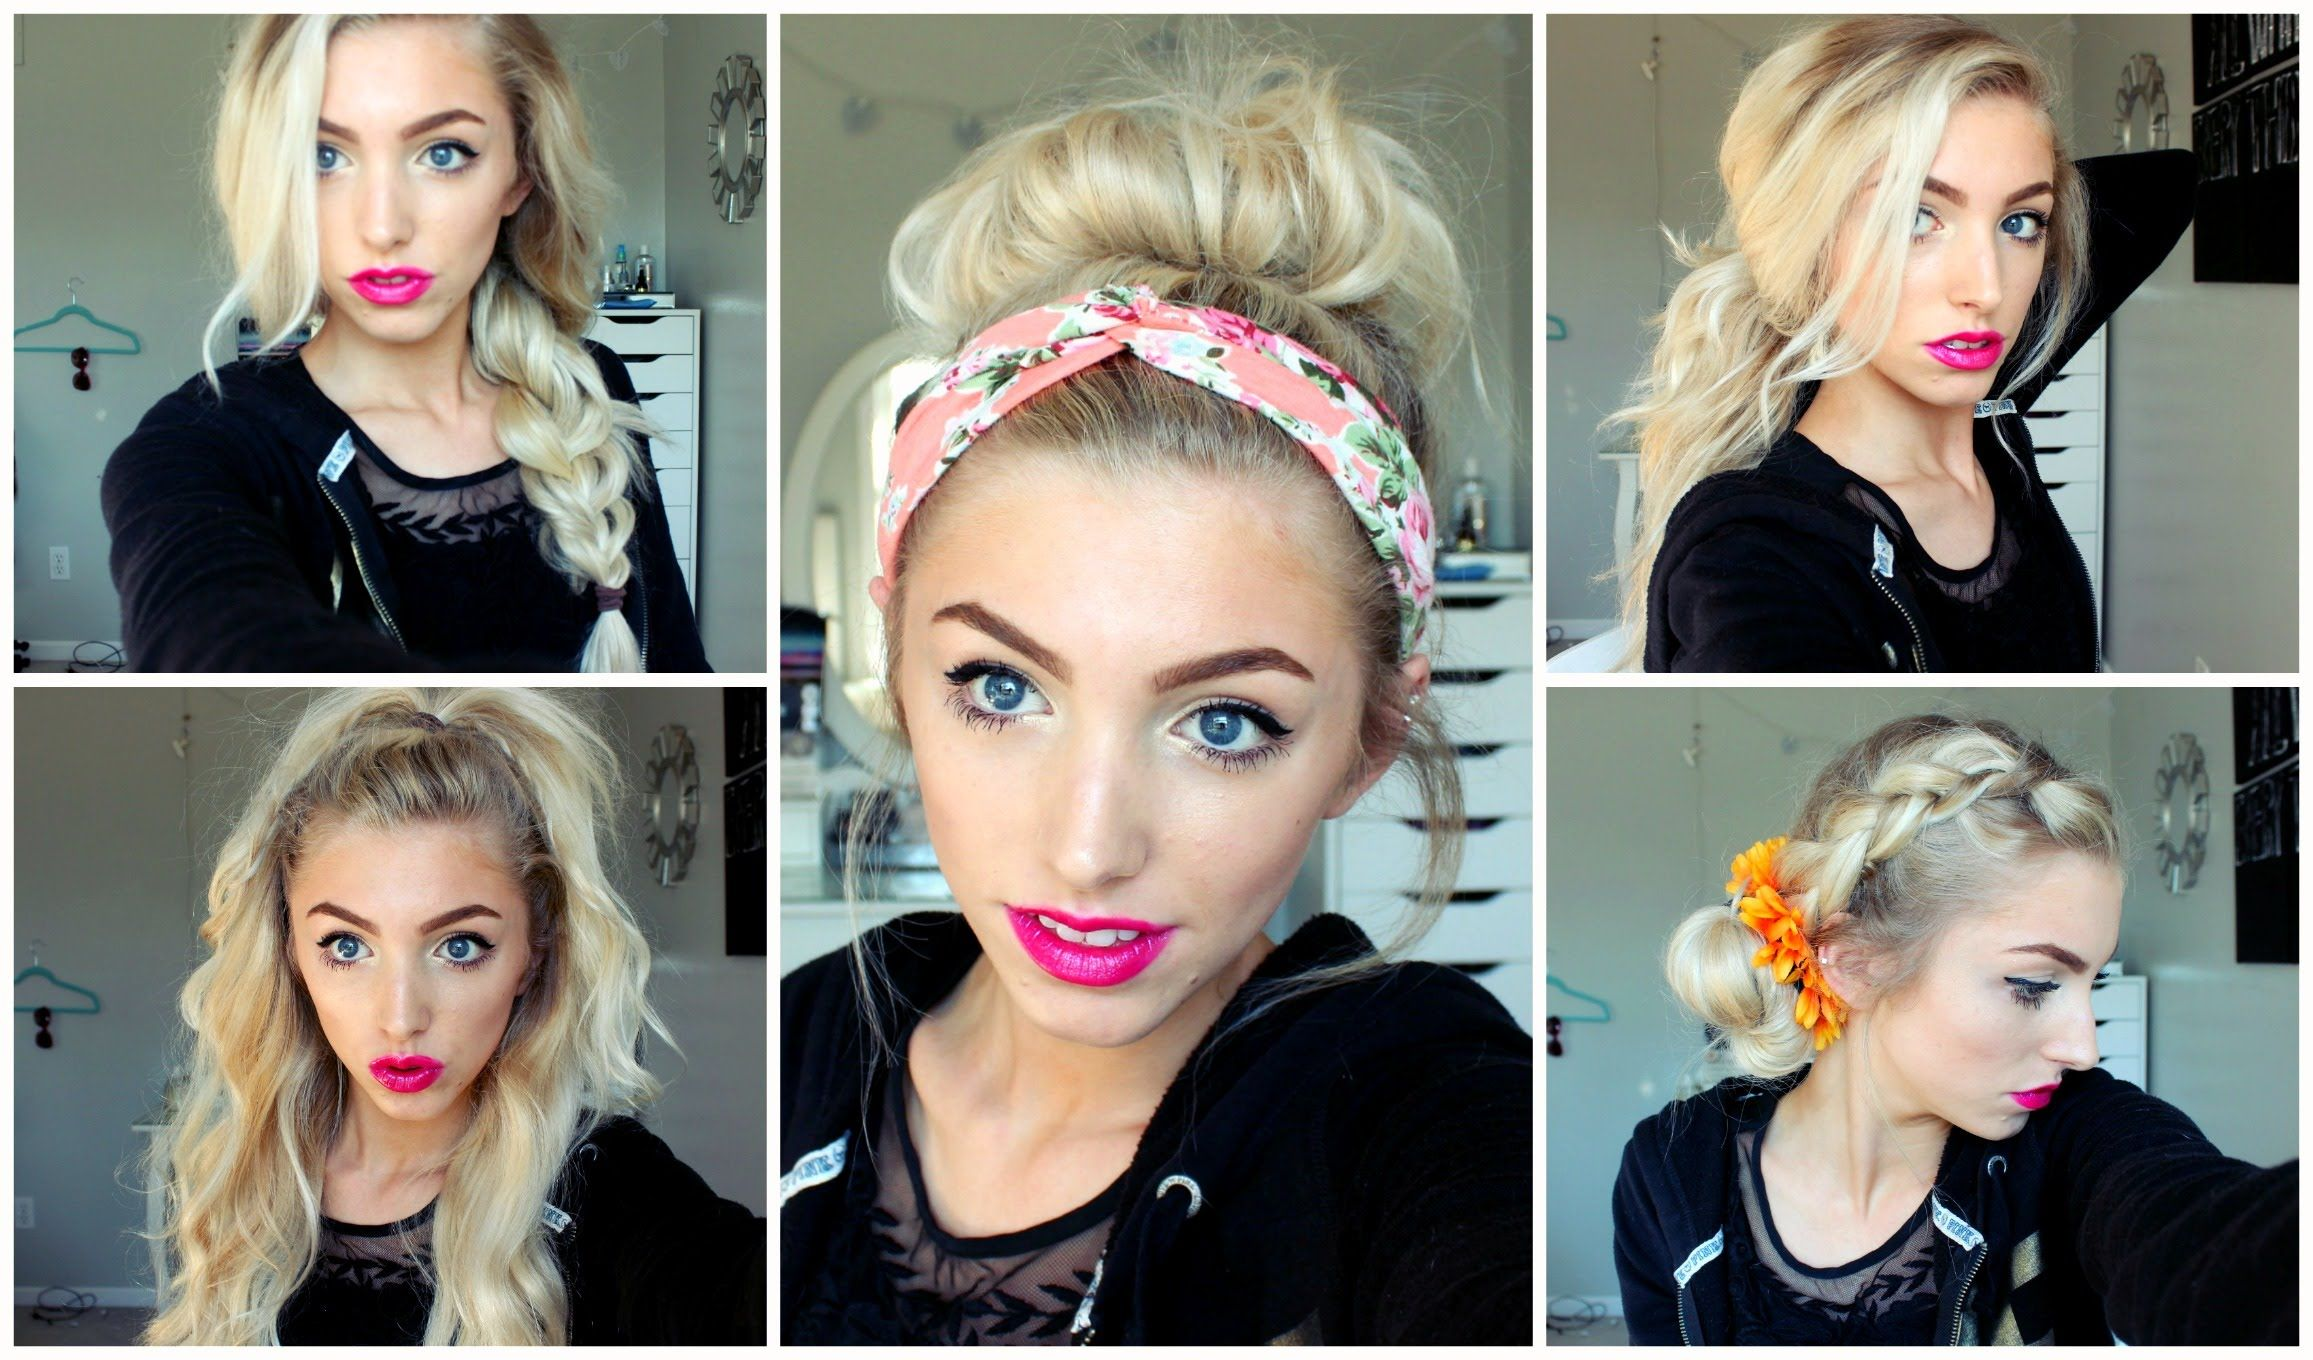 Summer Hairstyles Simple 3 Easy Summer Hairstyles  Fashion  Pinterest  Summer And Fashion